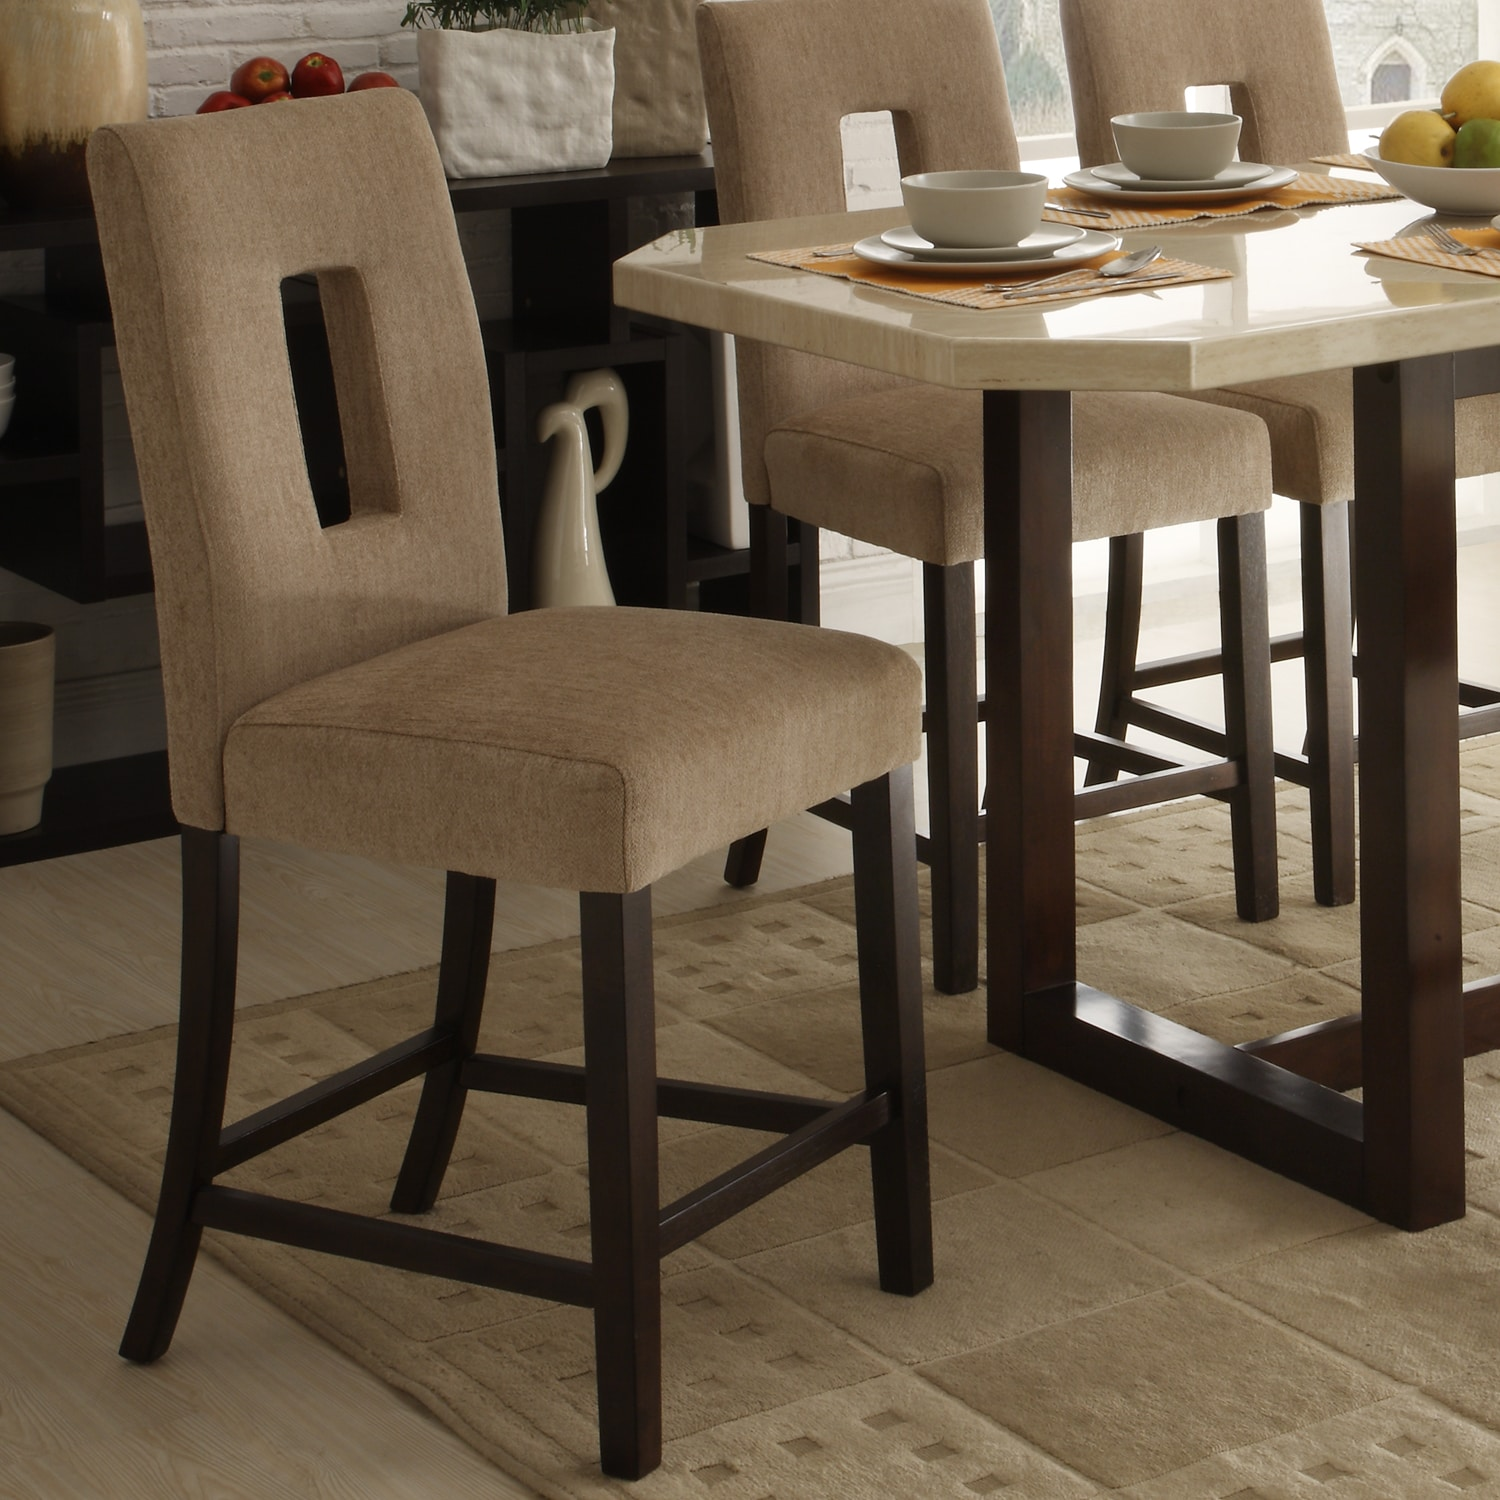 Camille Beige Fabric Upholstered Counter Height Stool Set